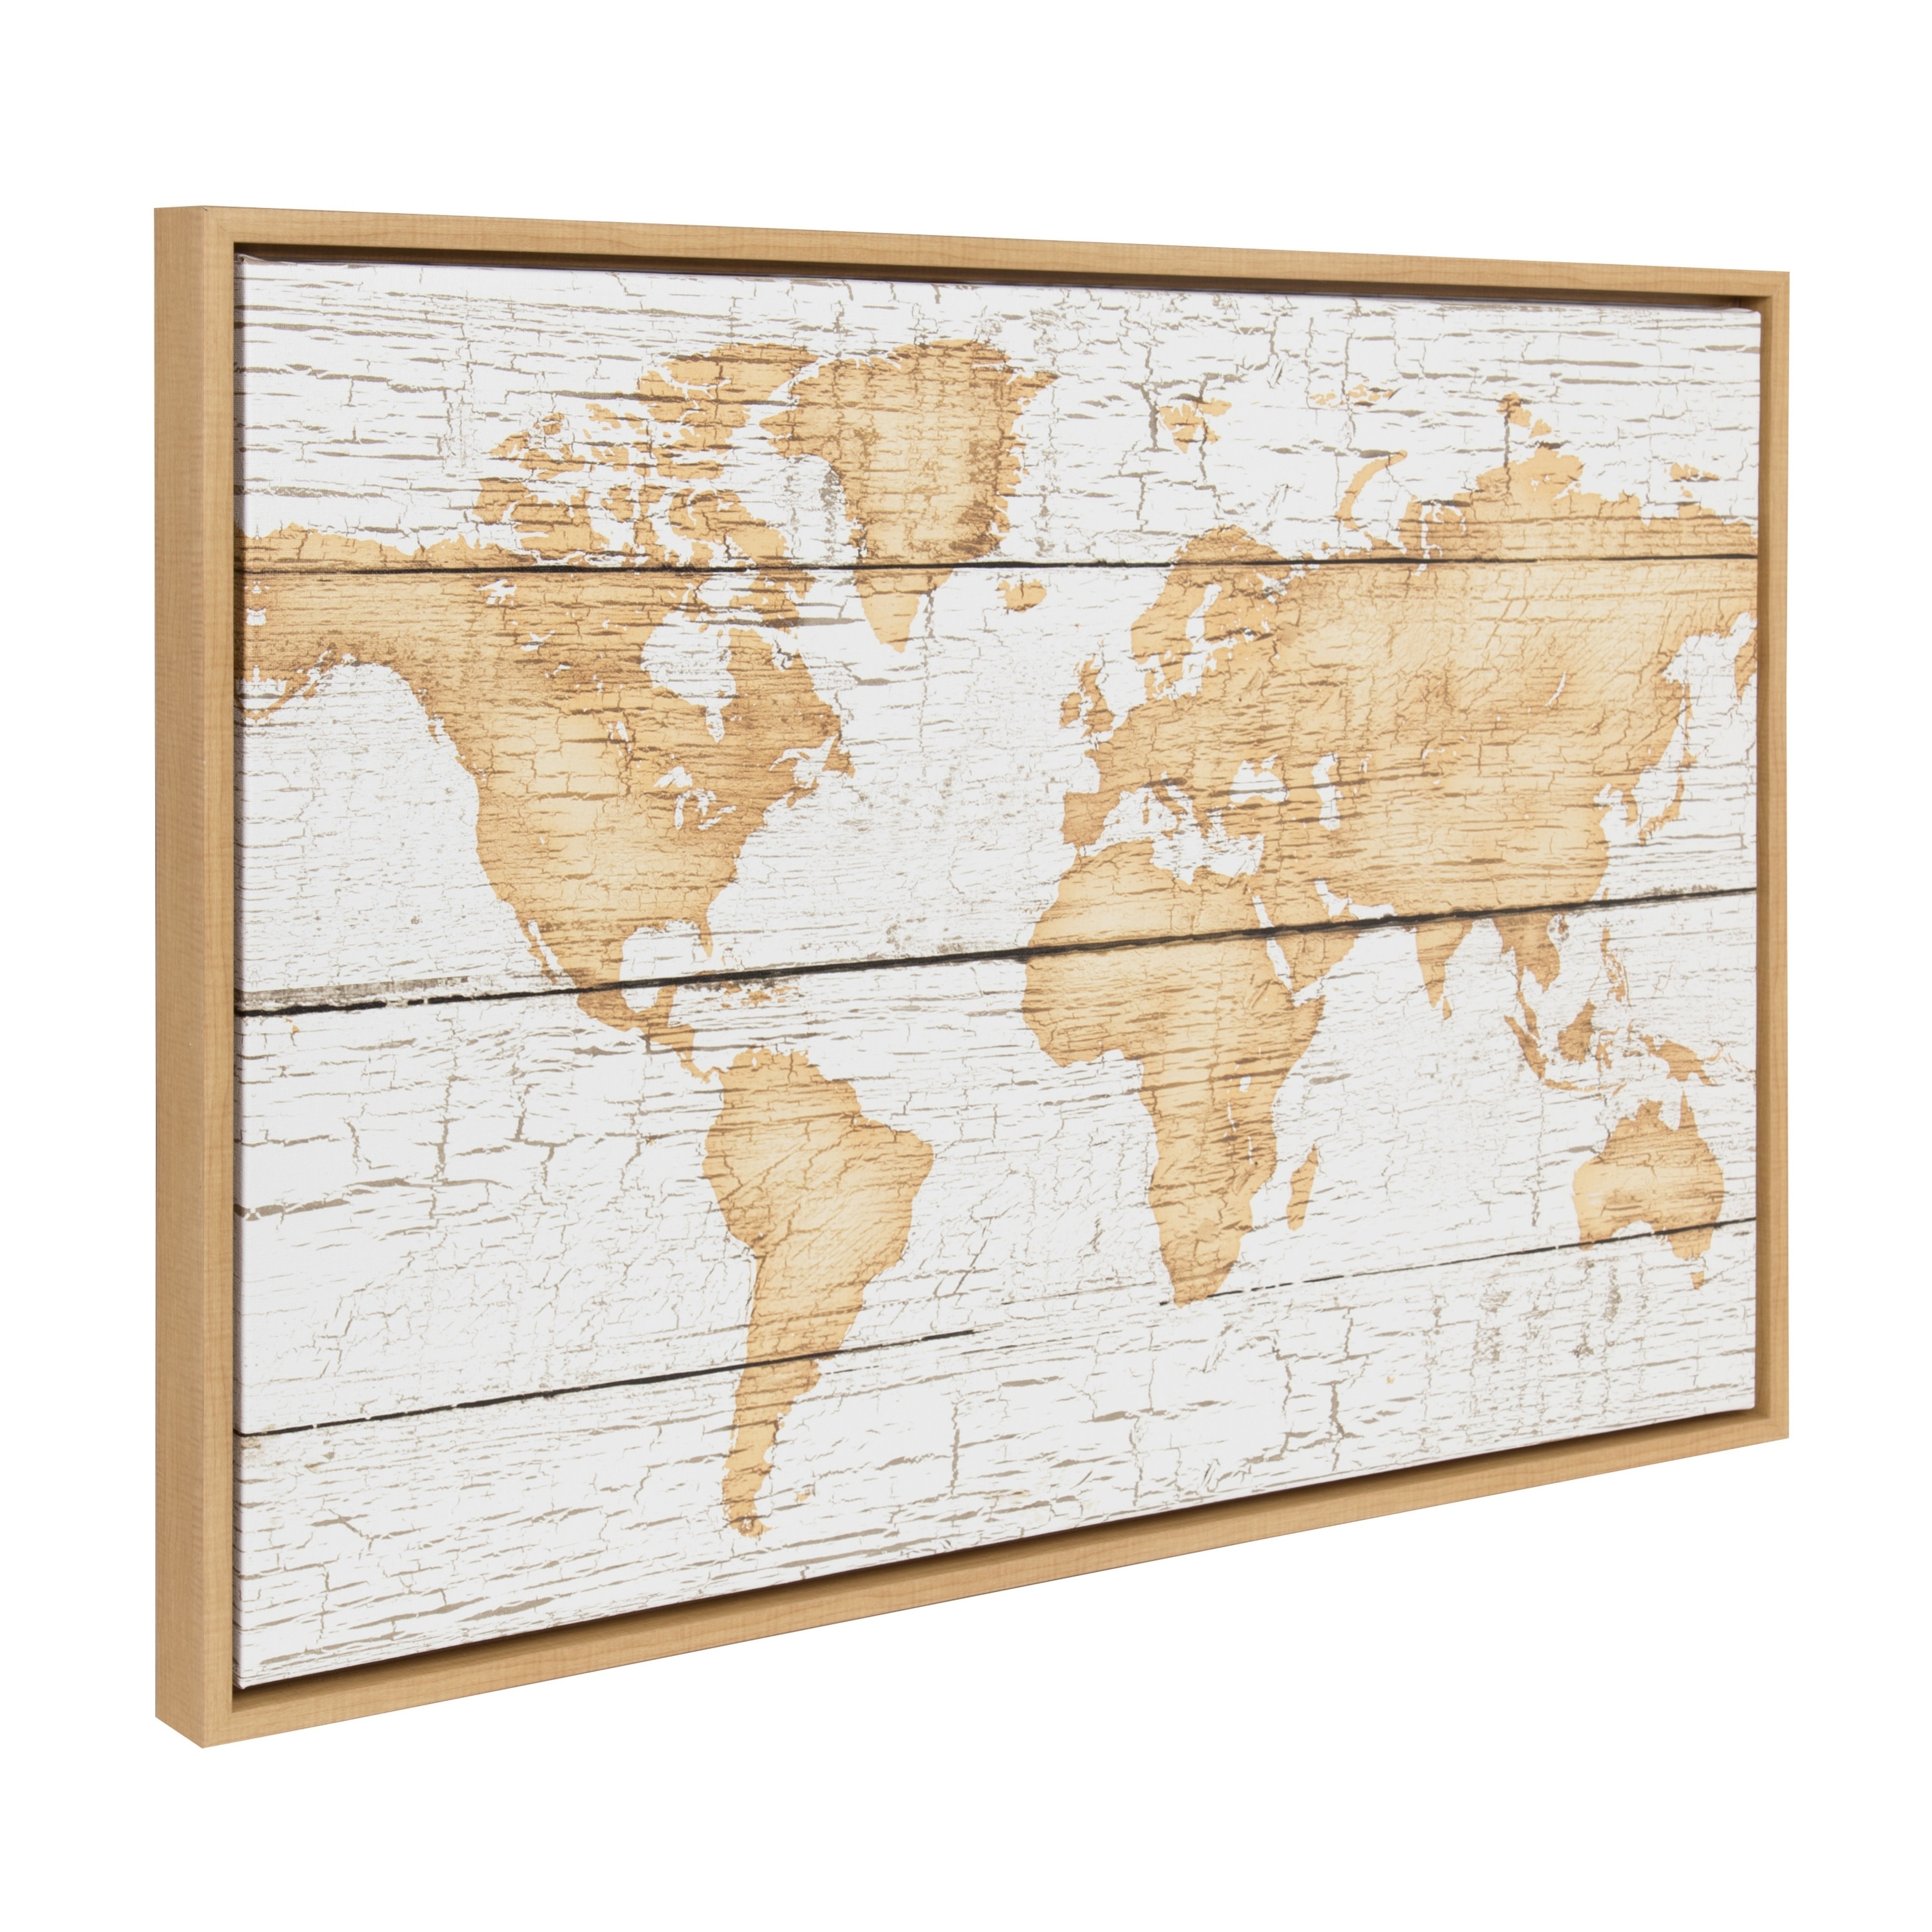 sylvie rustic world map 23x33 natural framed canvas wall art free shipping today overstock 24042587